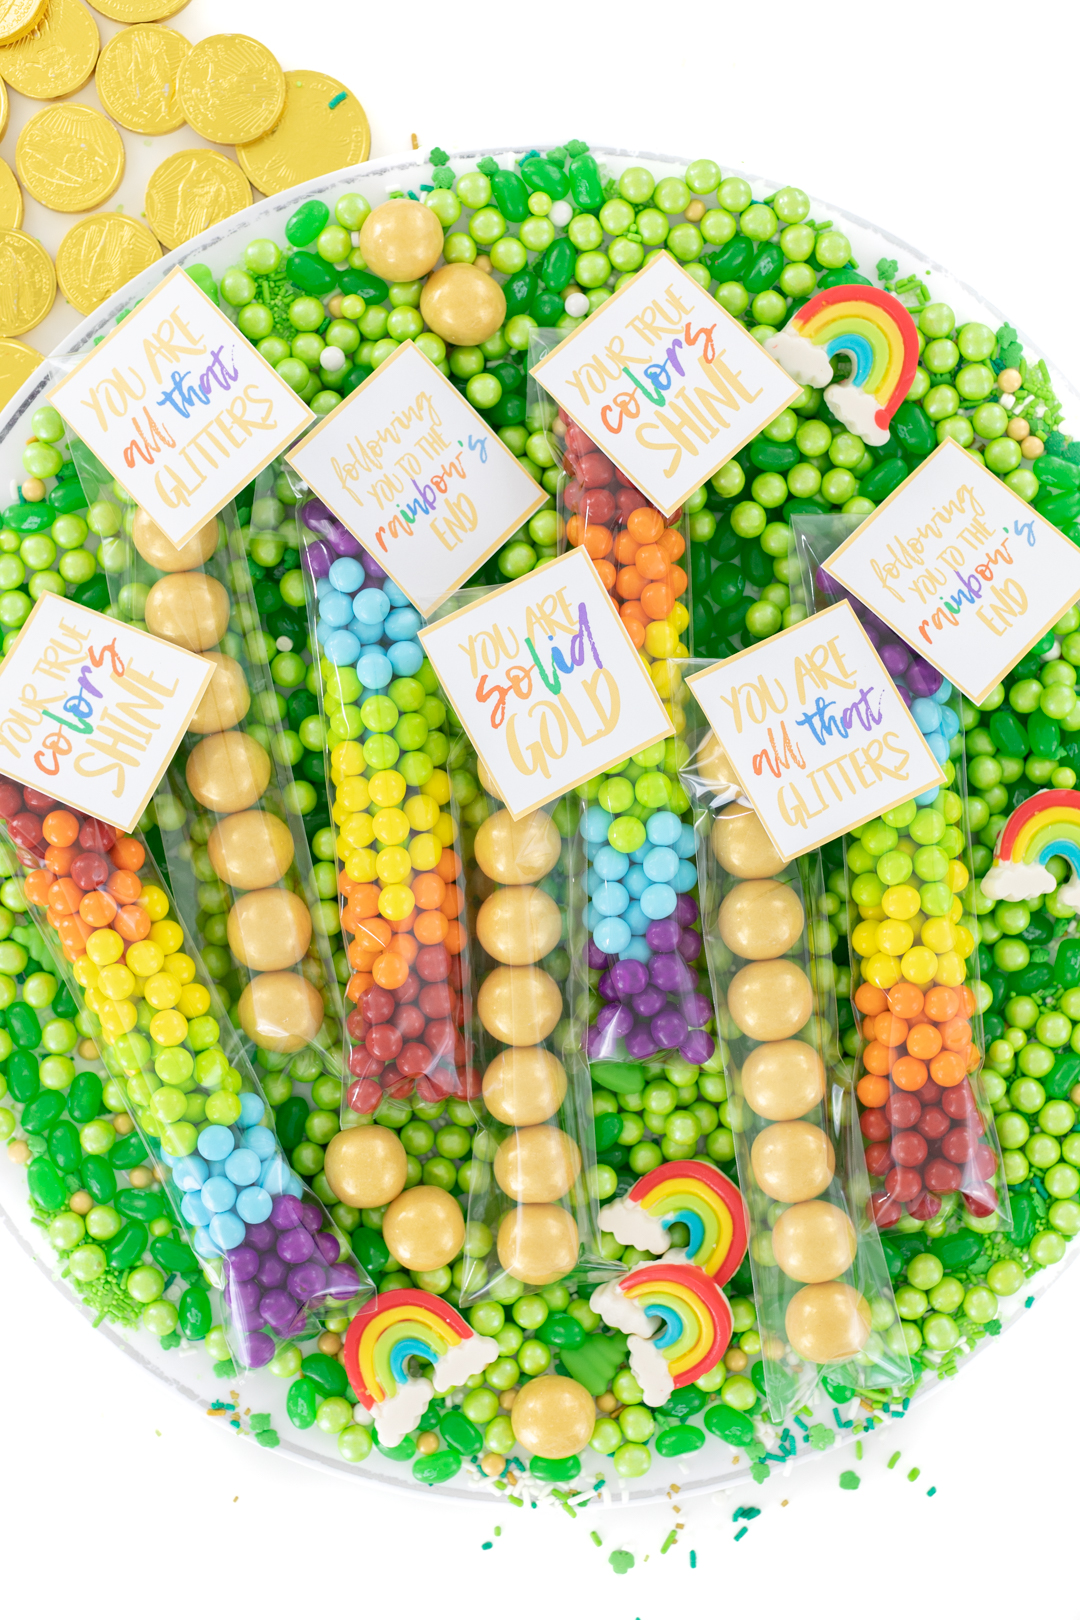 mix of st. patricks' day party favors